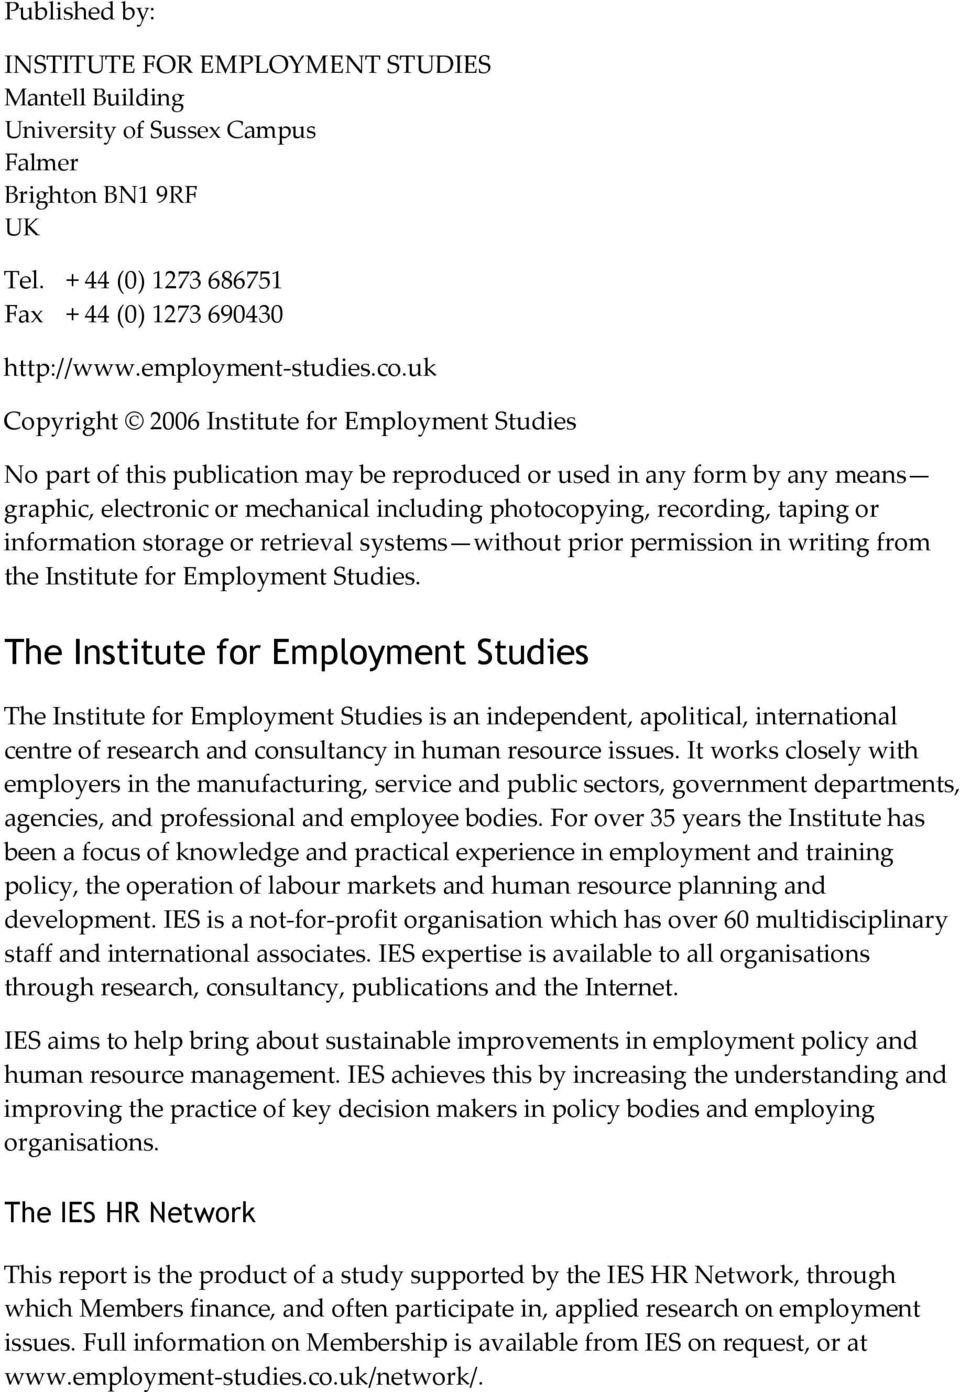 recording, taping or information storage or retrieval systems without prior permission in writing from the Institute for Employment Studies.